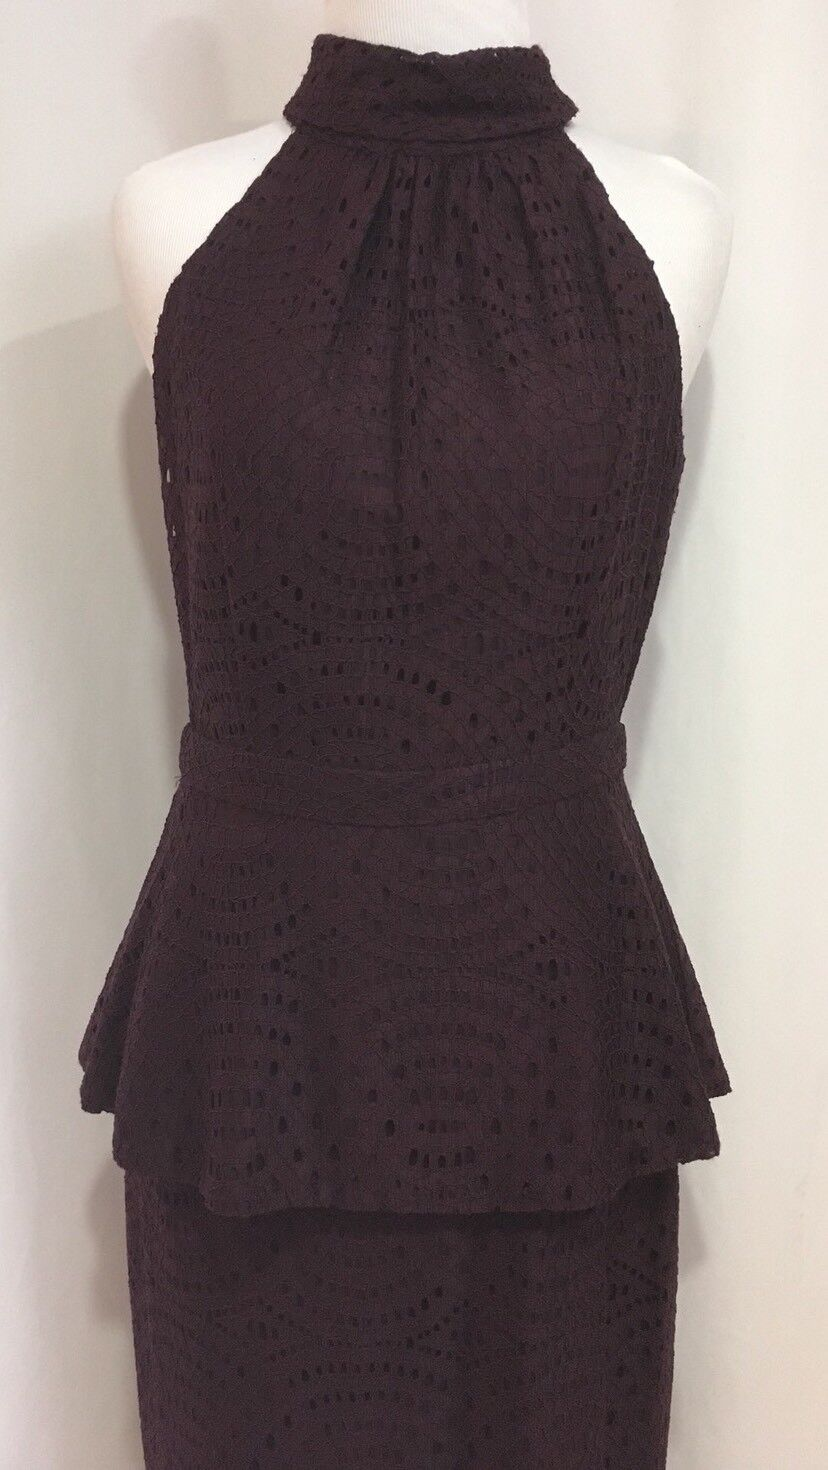 0f371d154f6 ... Eva Mendes New New New York And Company 2 Piece Plum Lace Halter Top    Skirt ...